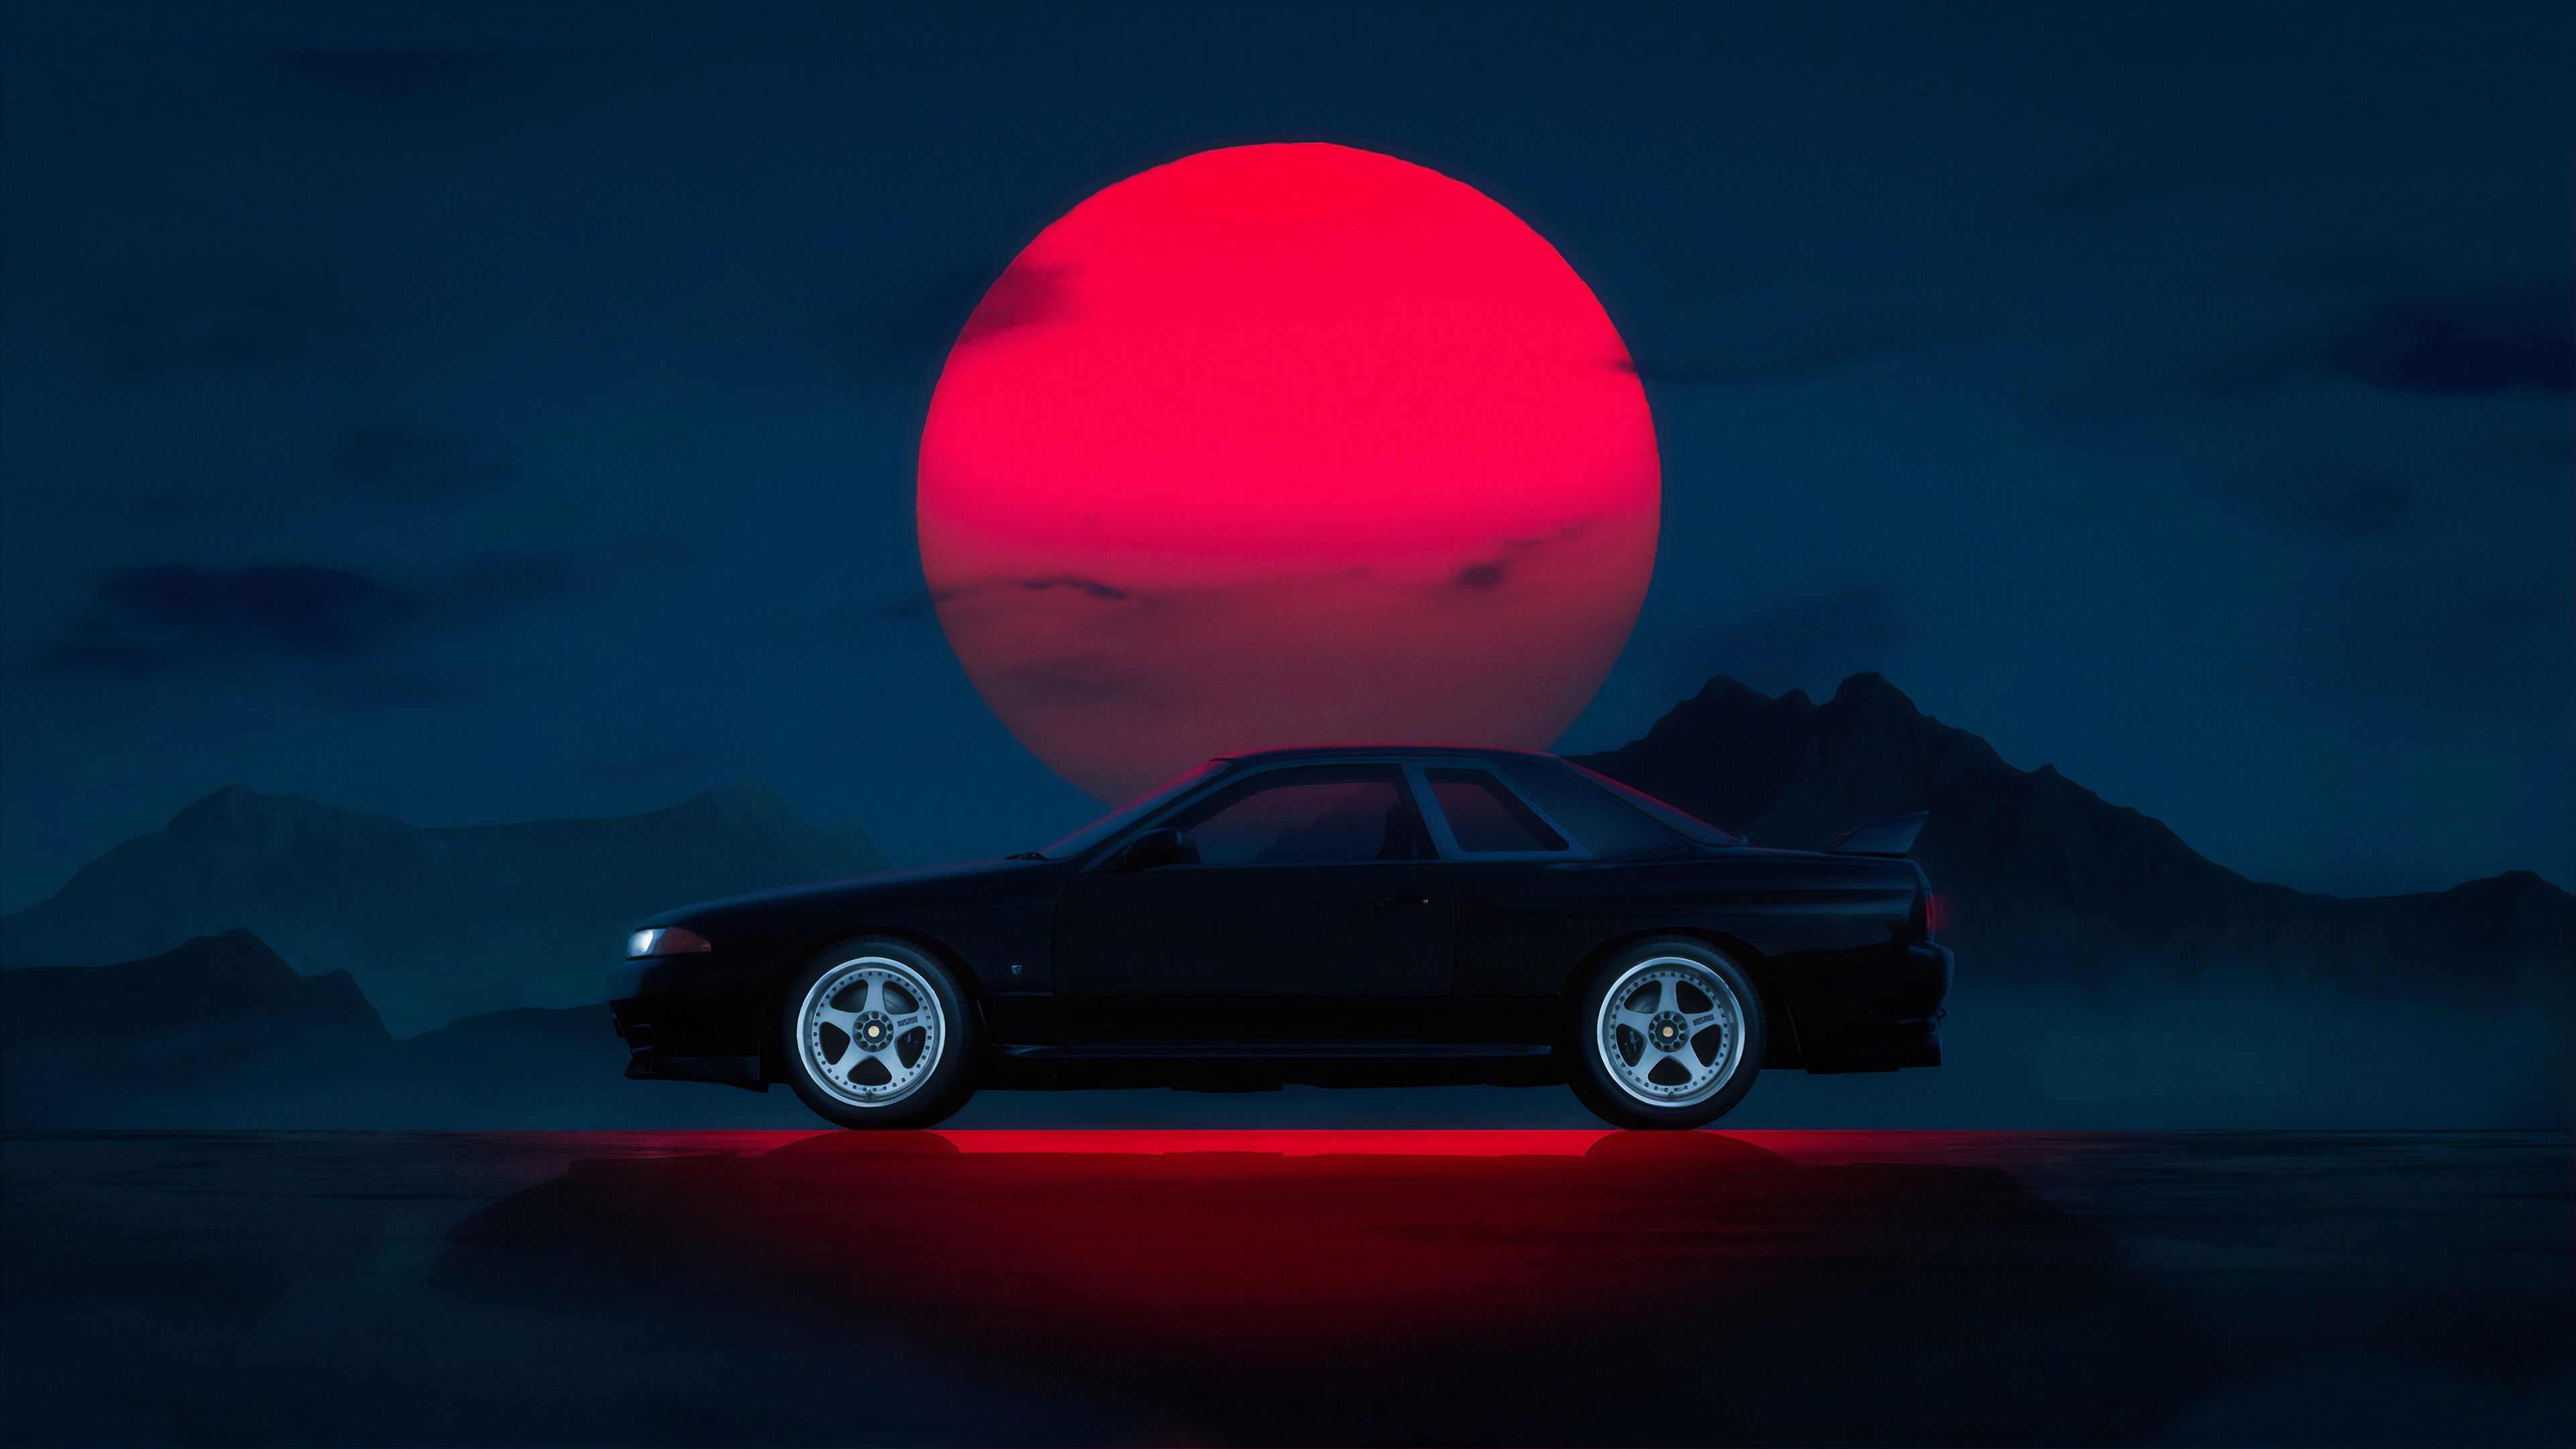 Aesthetic Jdm Car Wallpaper 4k